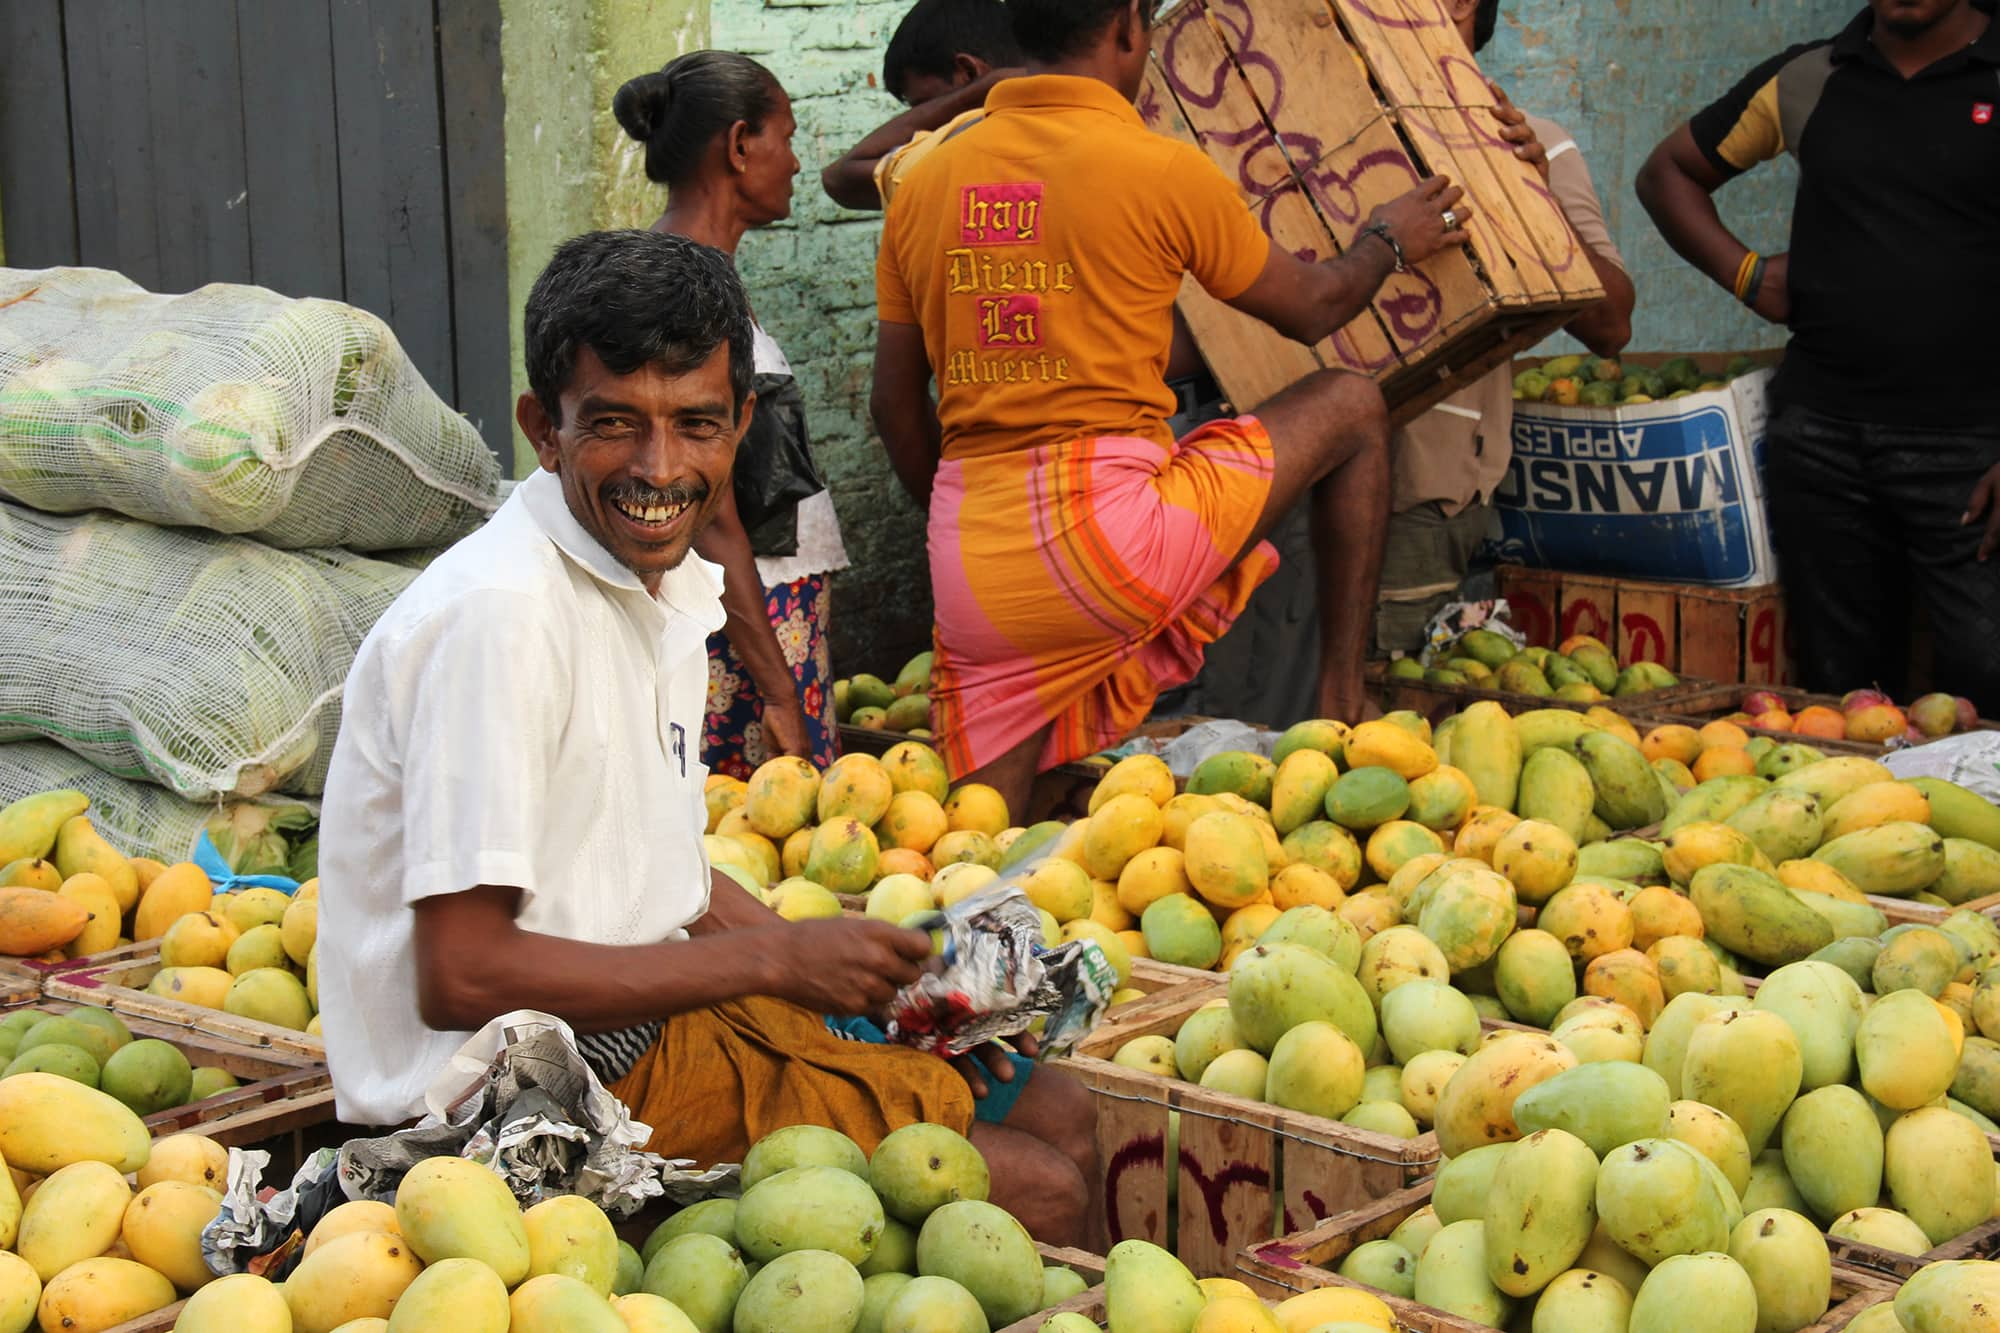 Mango season in Sri Lanka